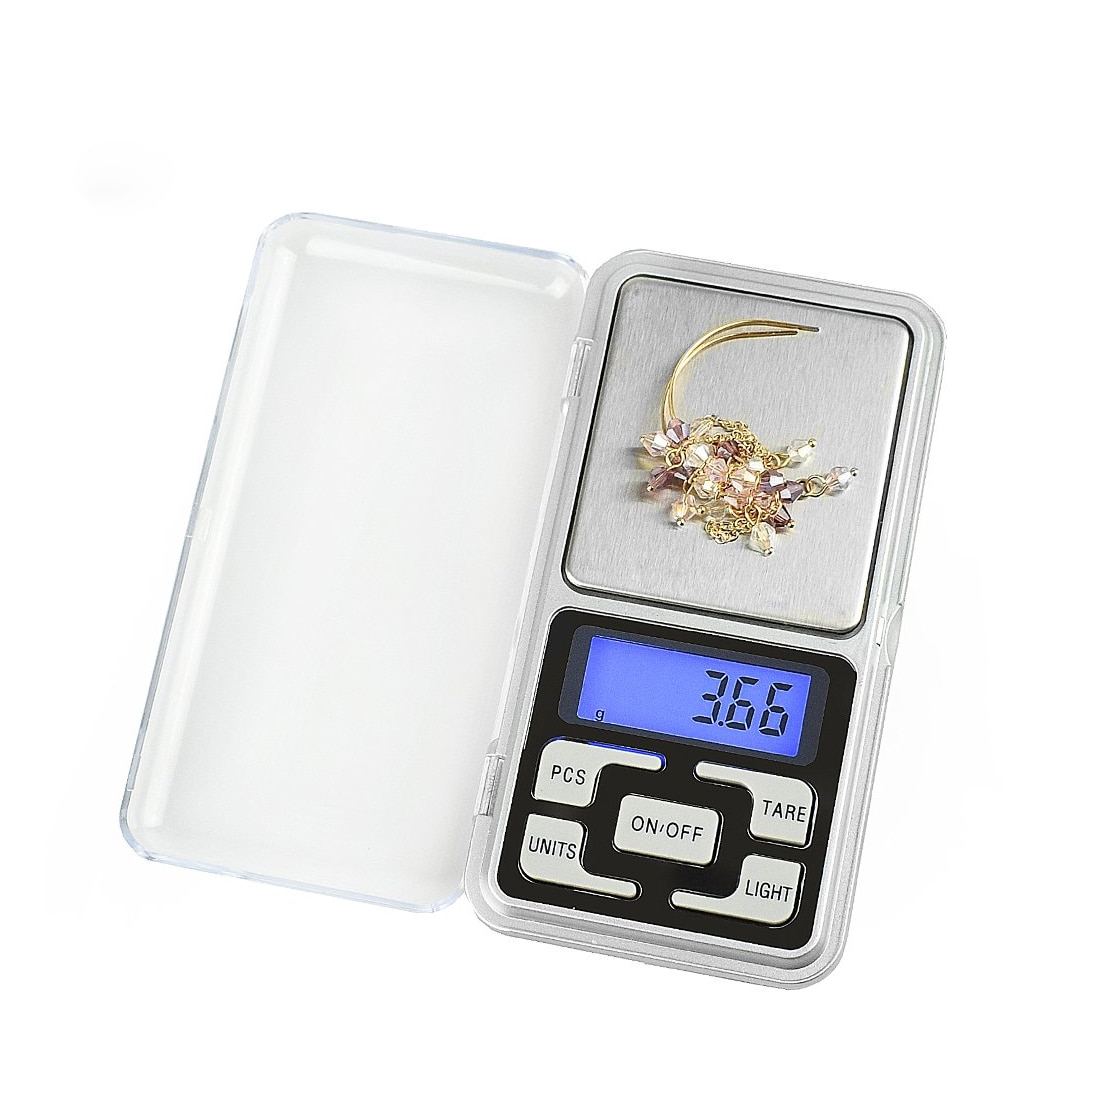 Kitchen Electronics Scale Balance Gram 0.01 / 0.1g Accuracy for Gold Precision Mini Pocket Jewelry Weight